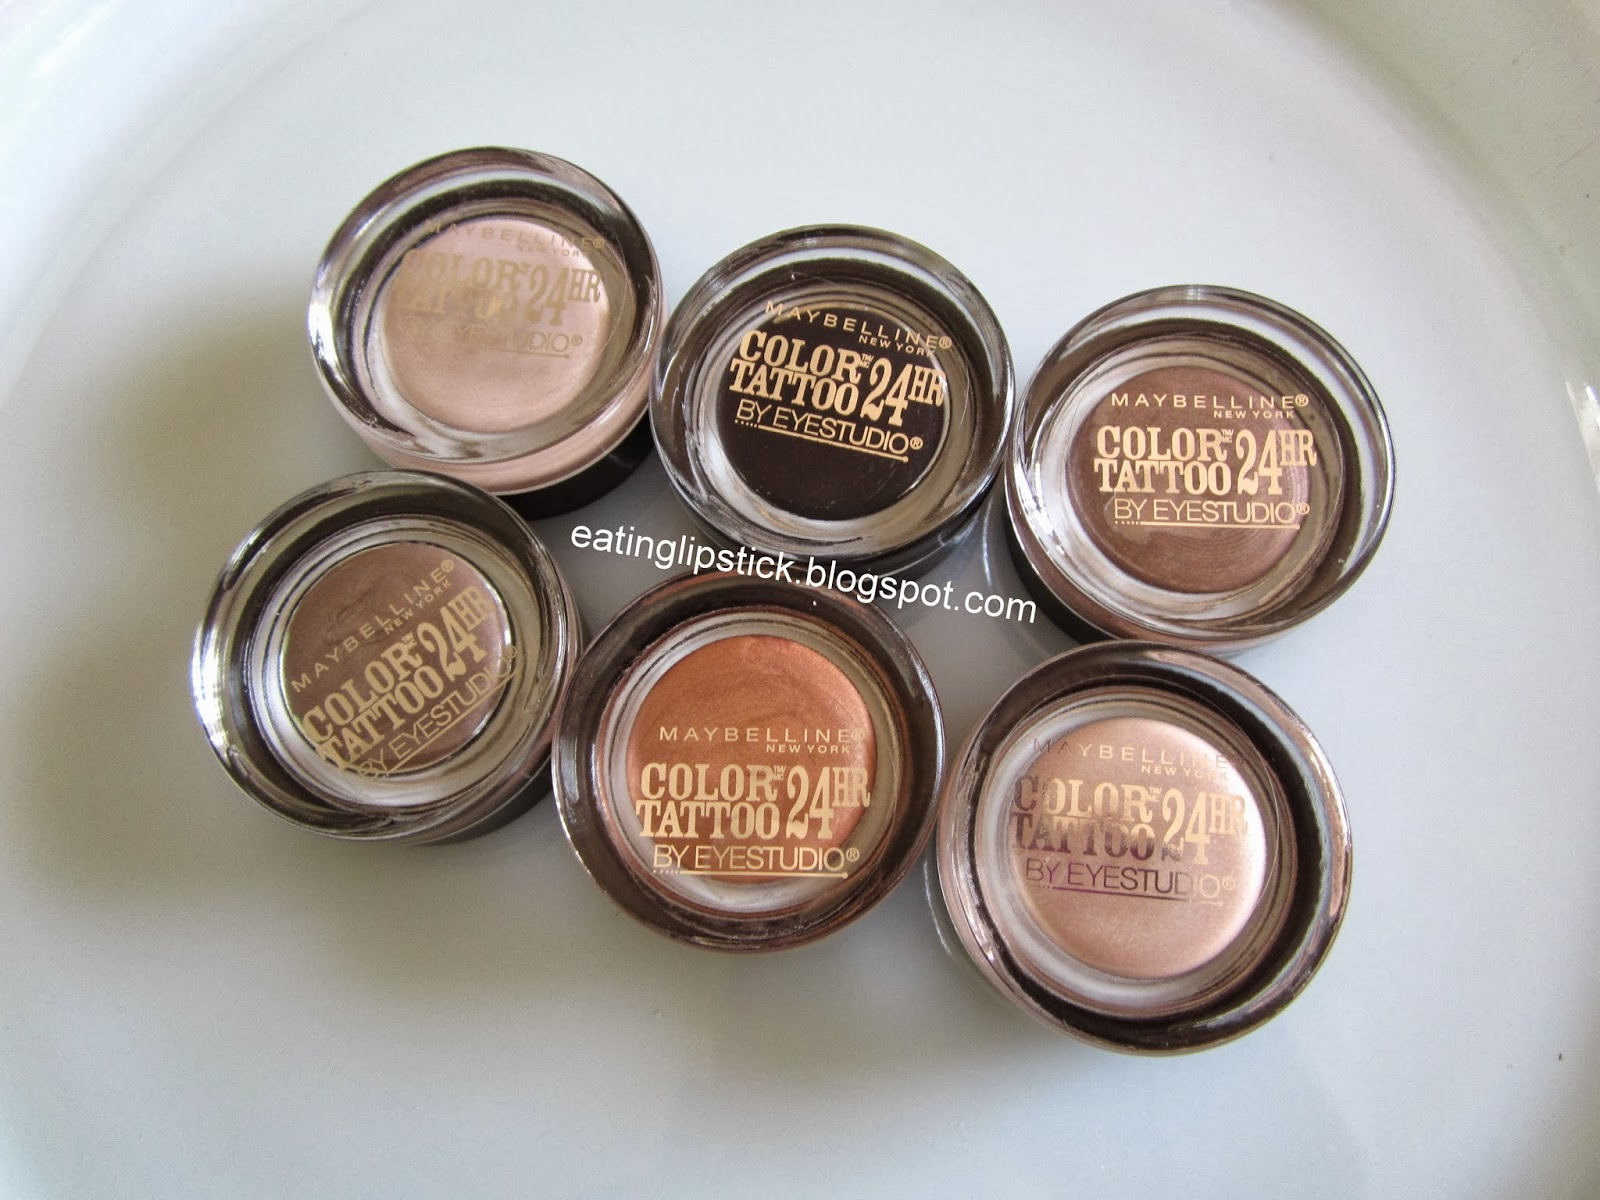 Eating lipstick maybelline dare to go nude color tattoos for Color tattoo maybelline